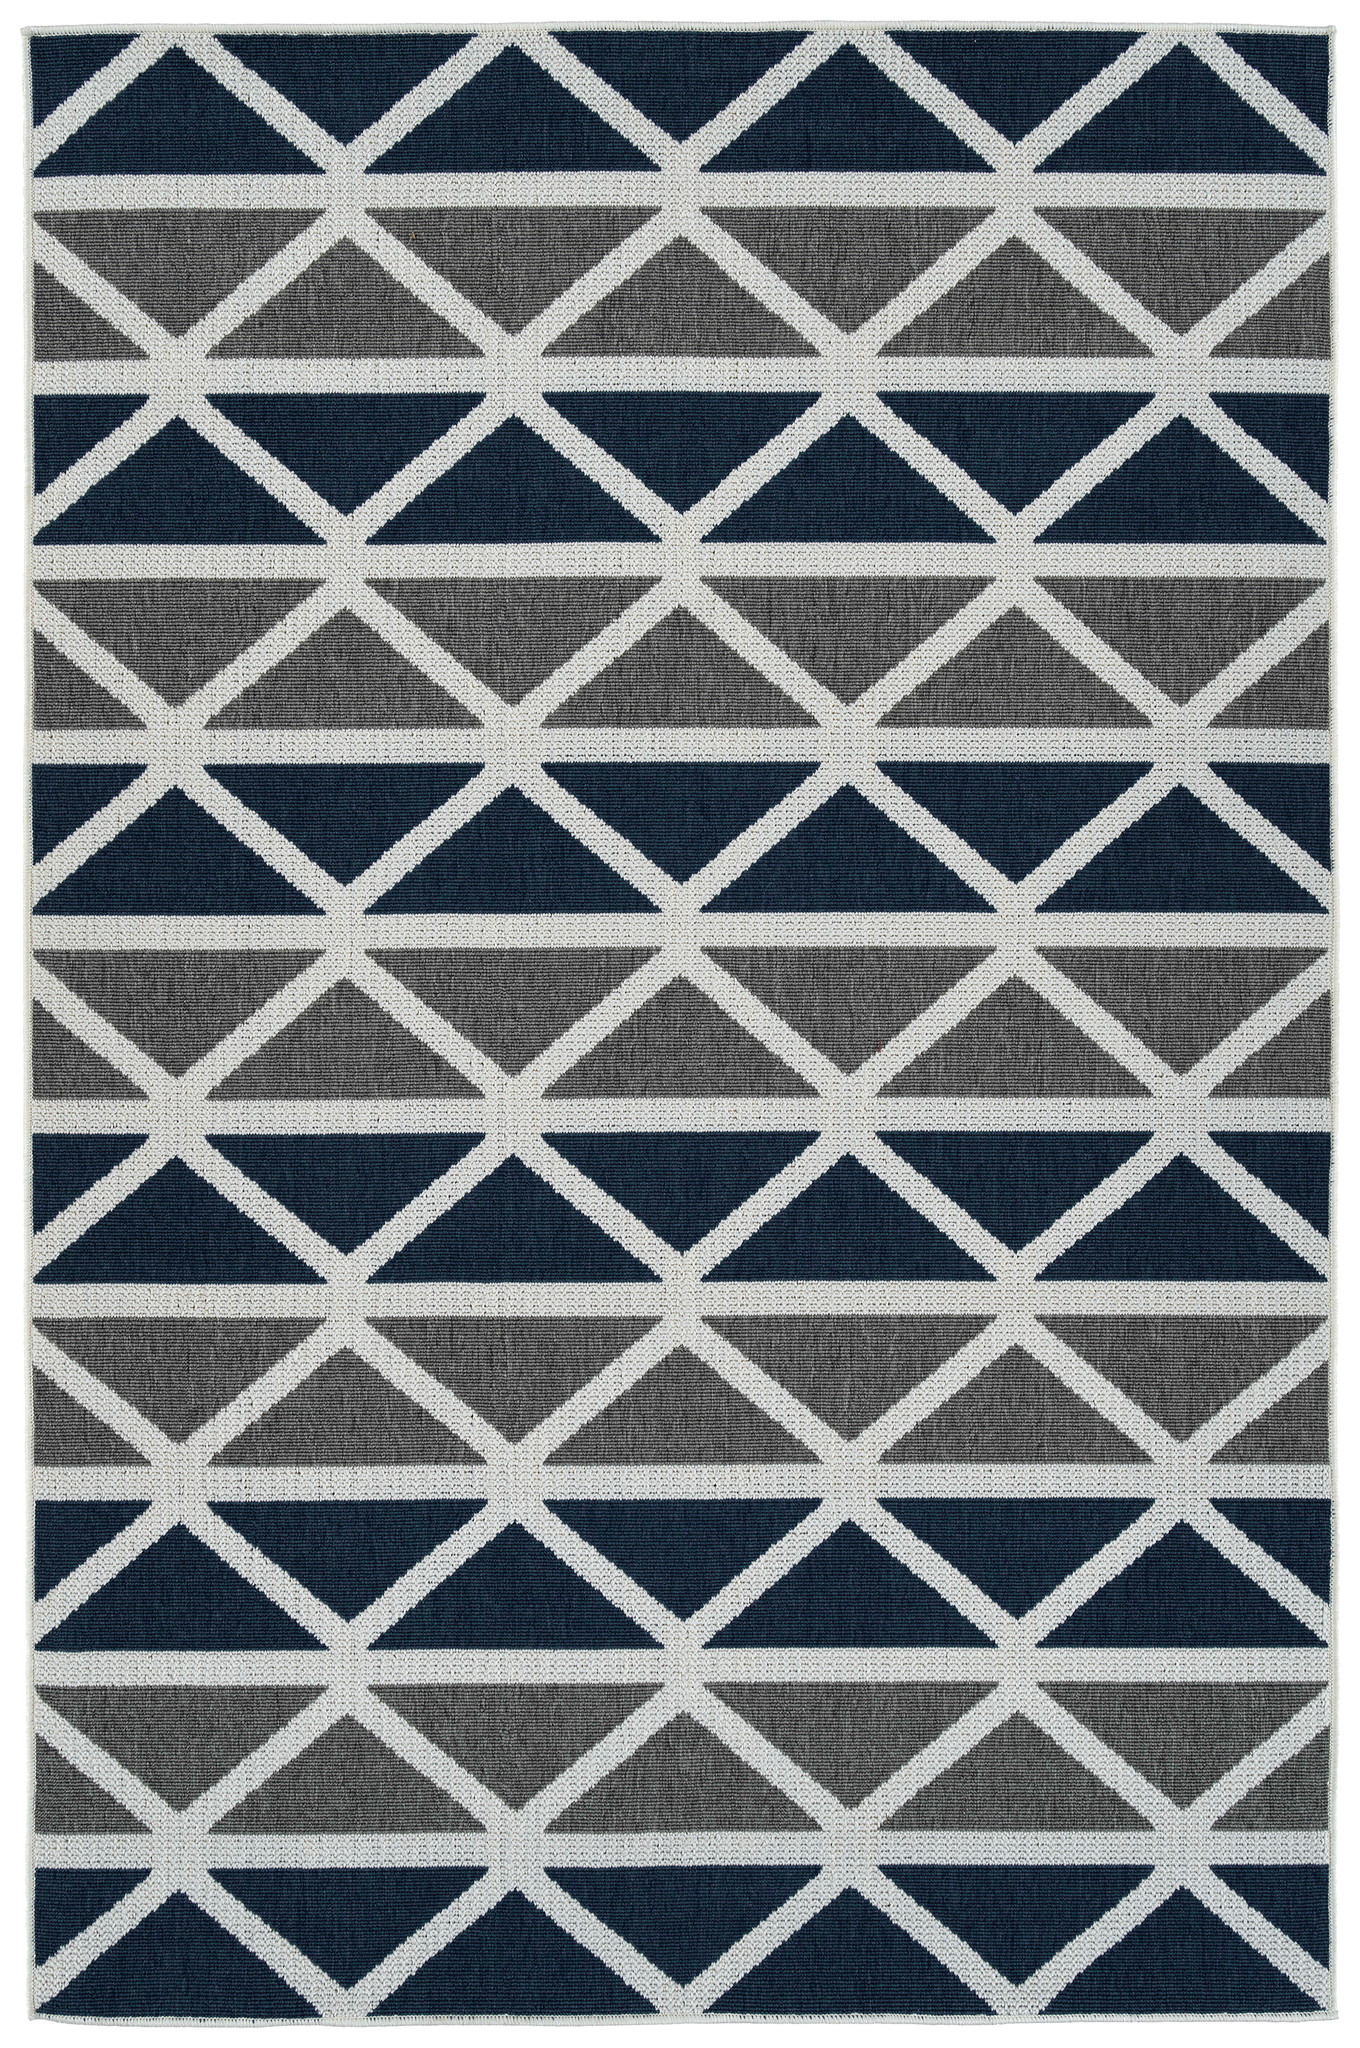 Image of: Nautical Pennant Indoor Outdoor Area Rug Caron S Beach House